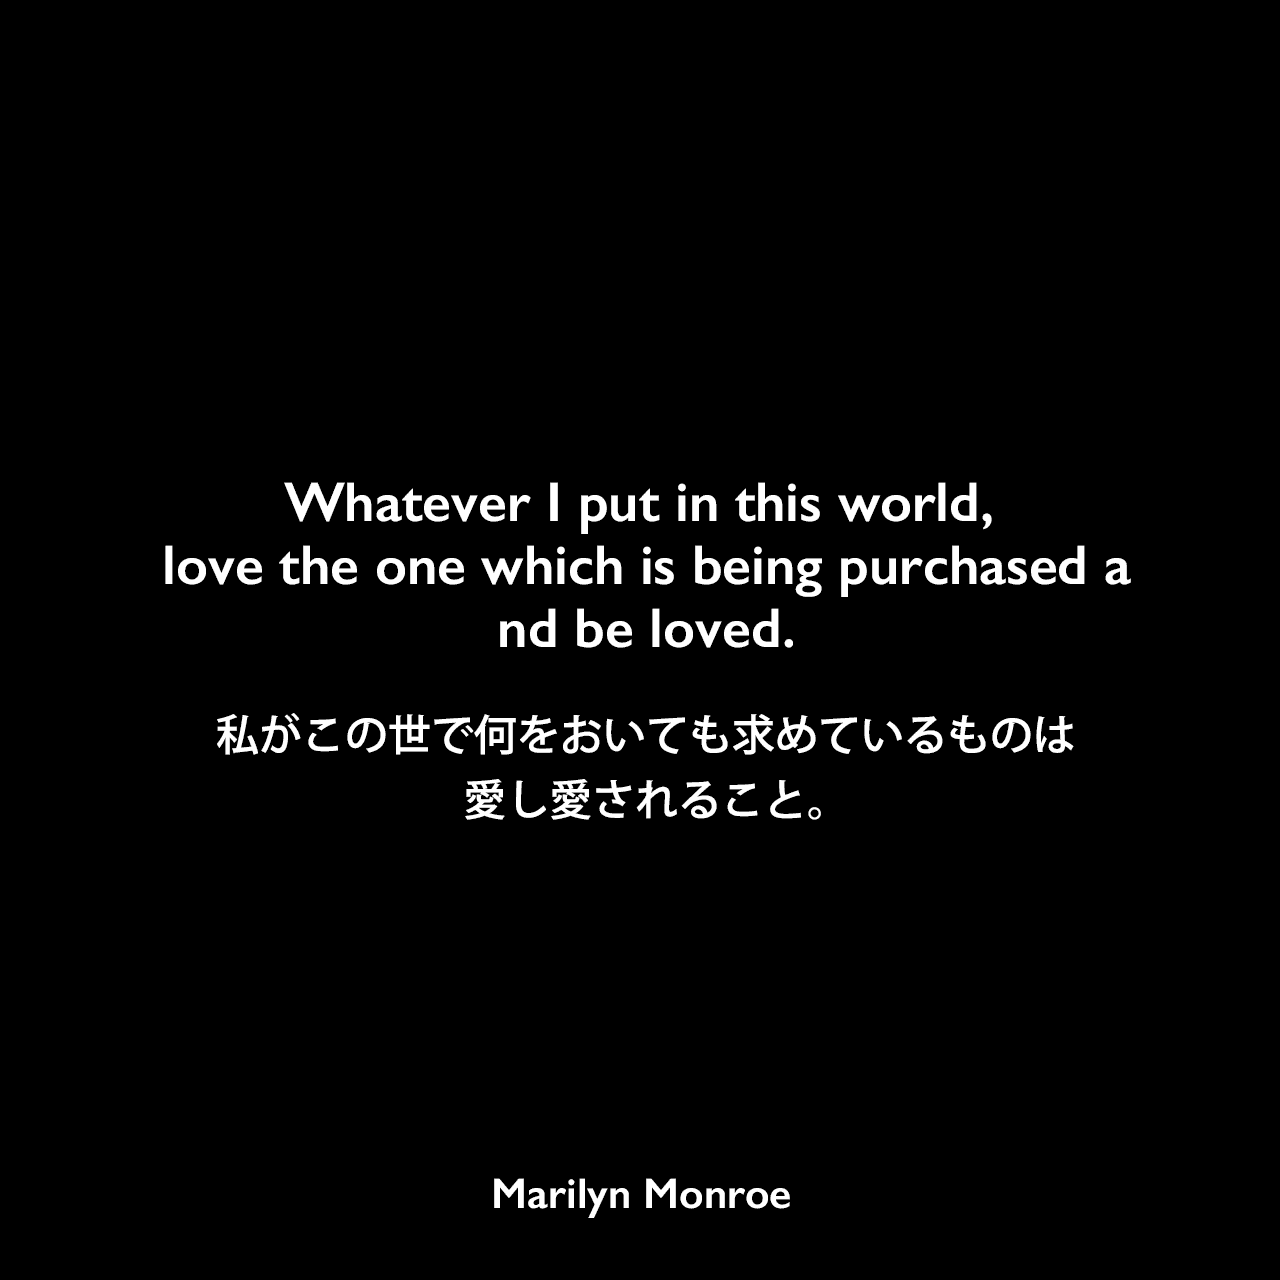 Whatever I put in this world, love the one which is being purchased and be loved.私がこの世で何をおいても求めているものは、愛し愛されること。